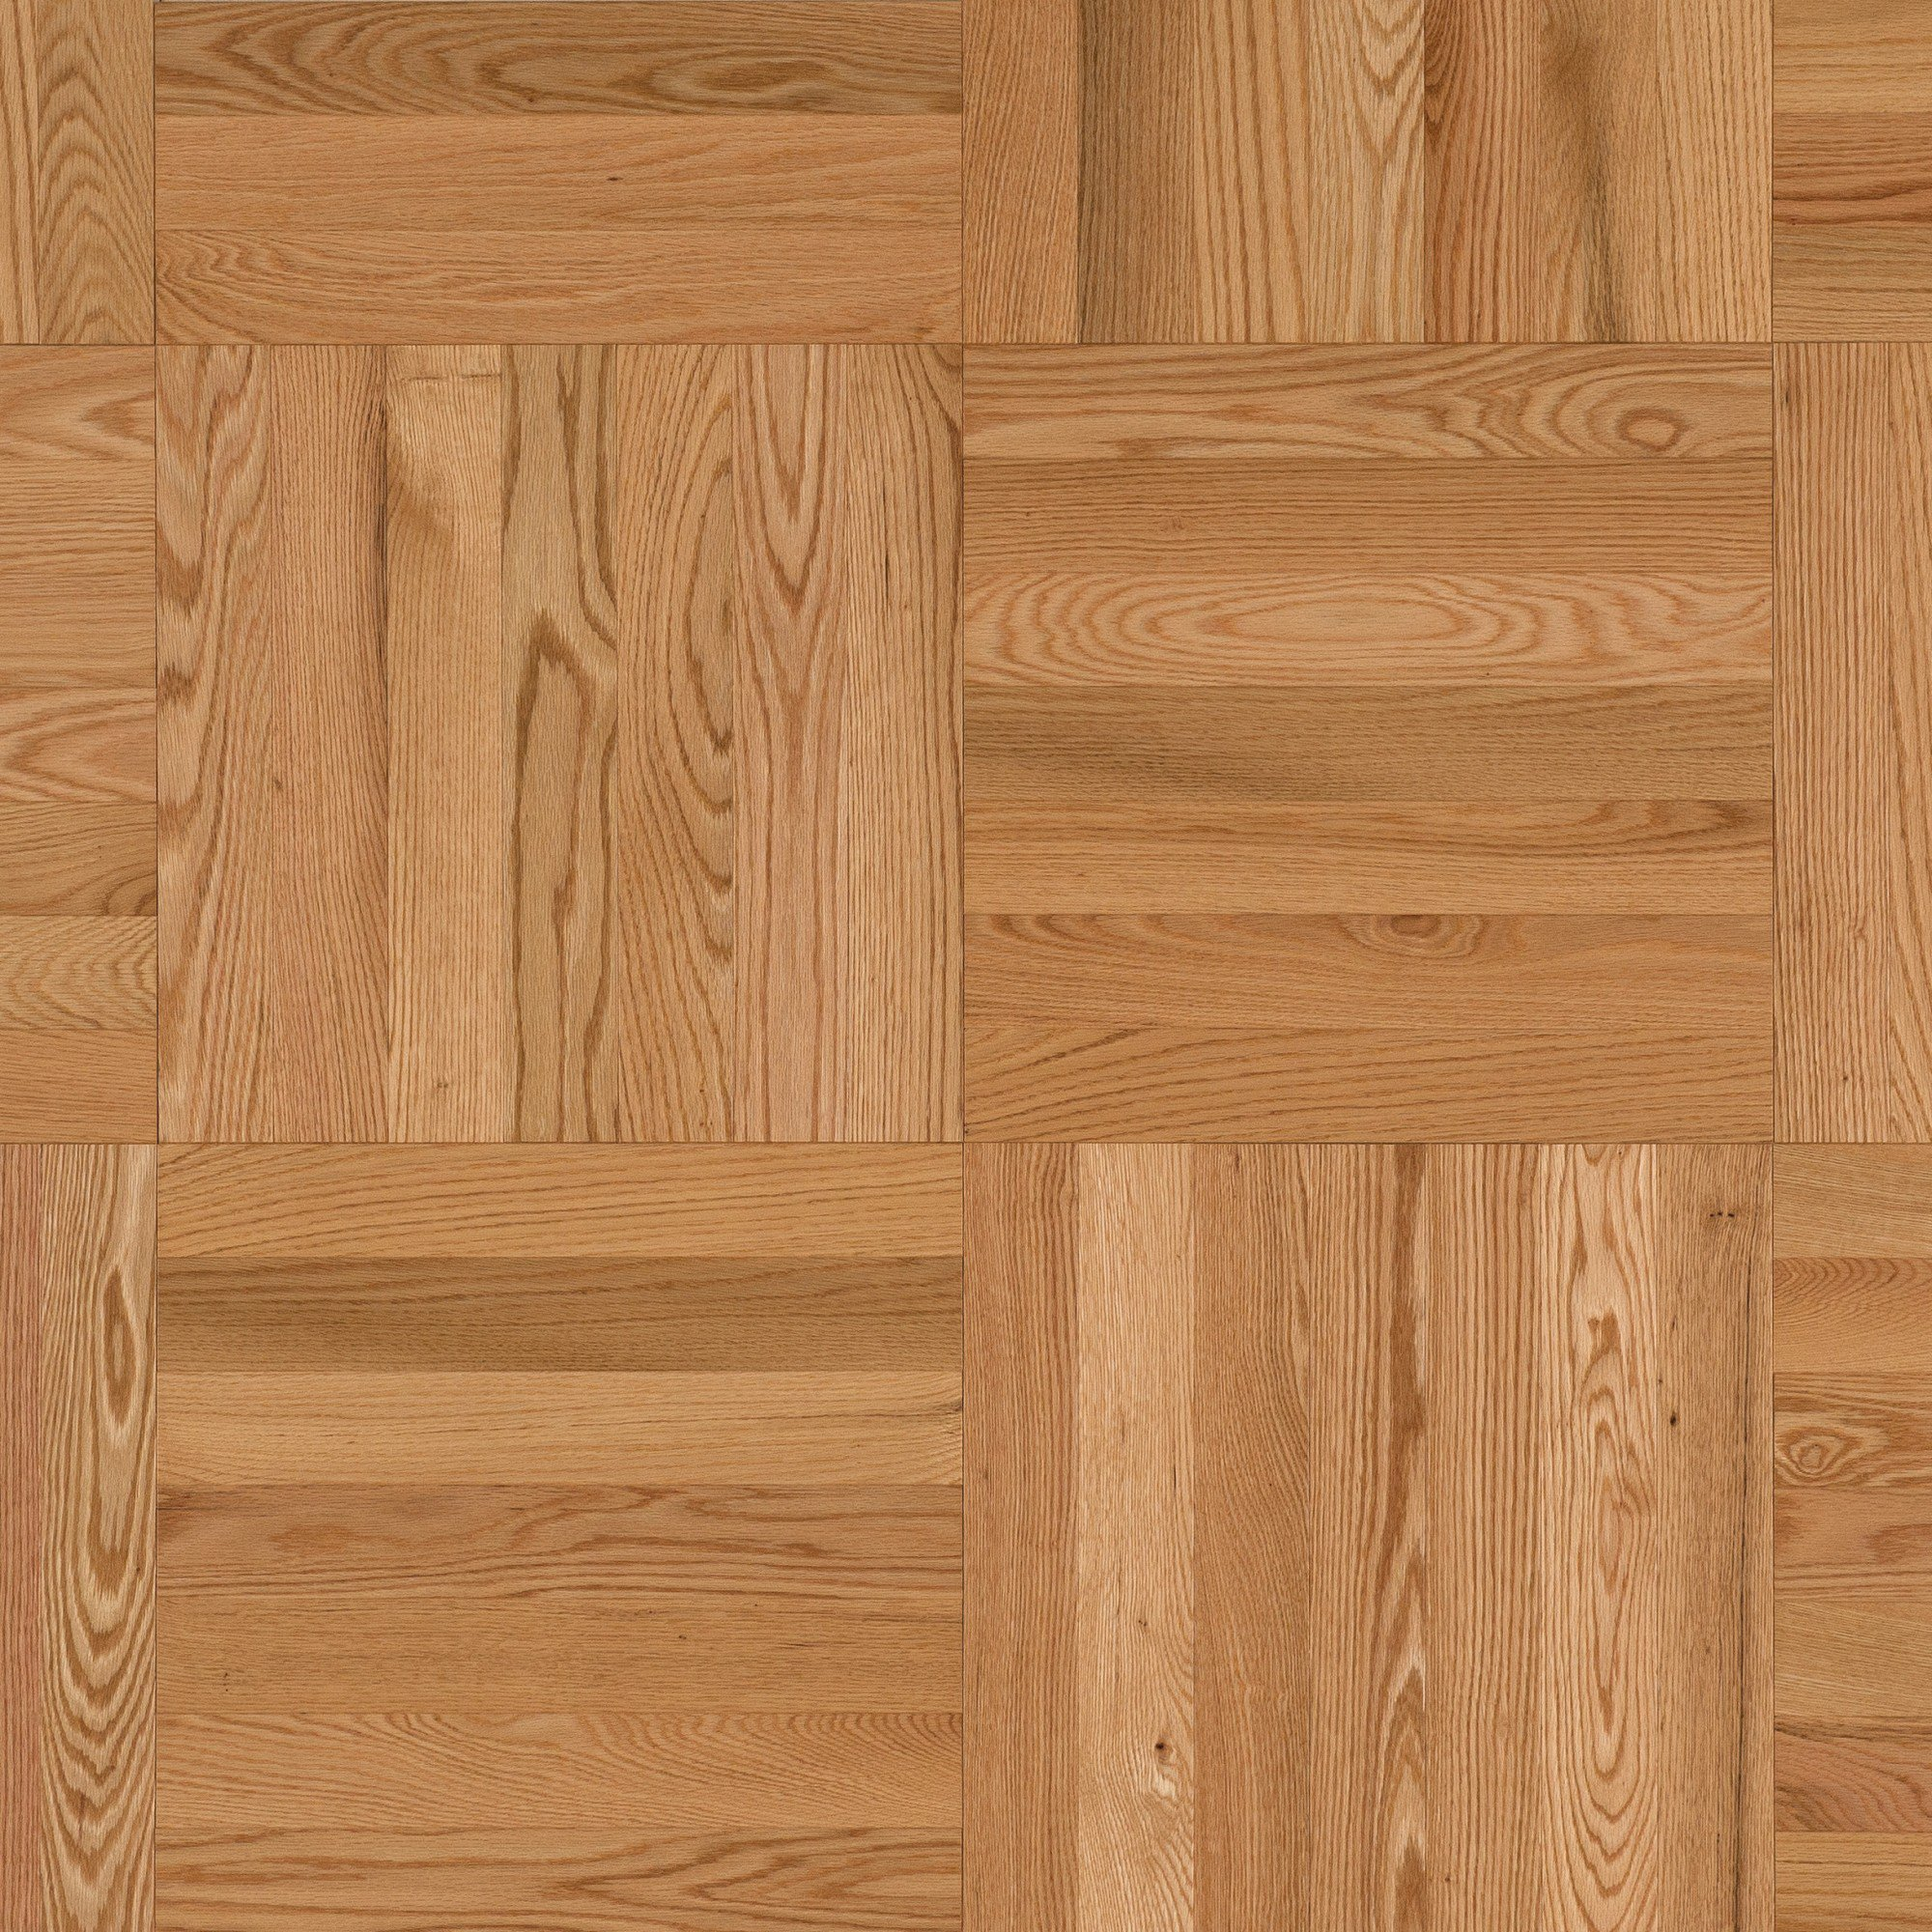 Red Oak Golden Exclusive Smooth - Floor image